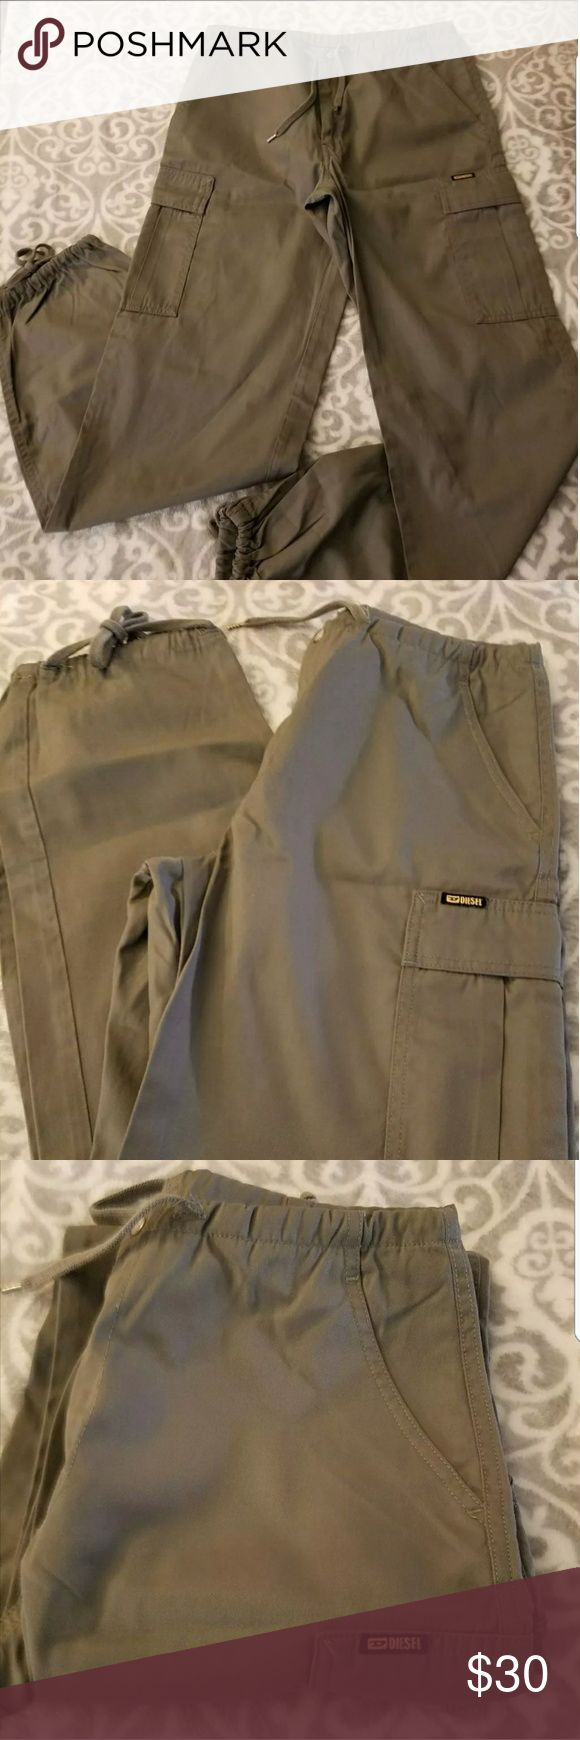 Diesel women's Cargo Pants size M Diesel women's cargo pants size M worn a few times but still in good condition. Color is Olive Green and comes from a smoke free home Diesel Pants Capris